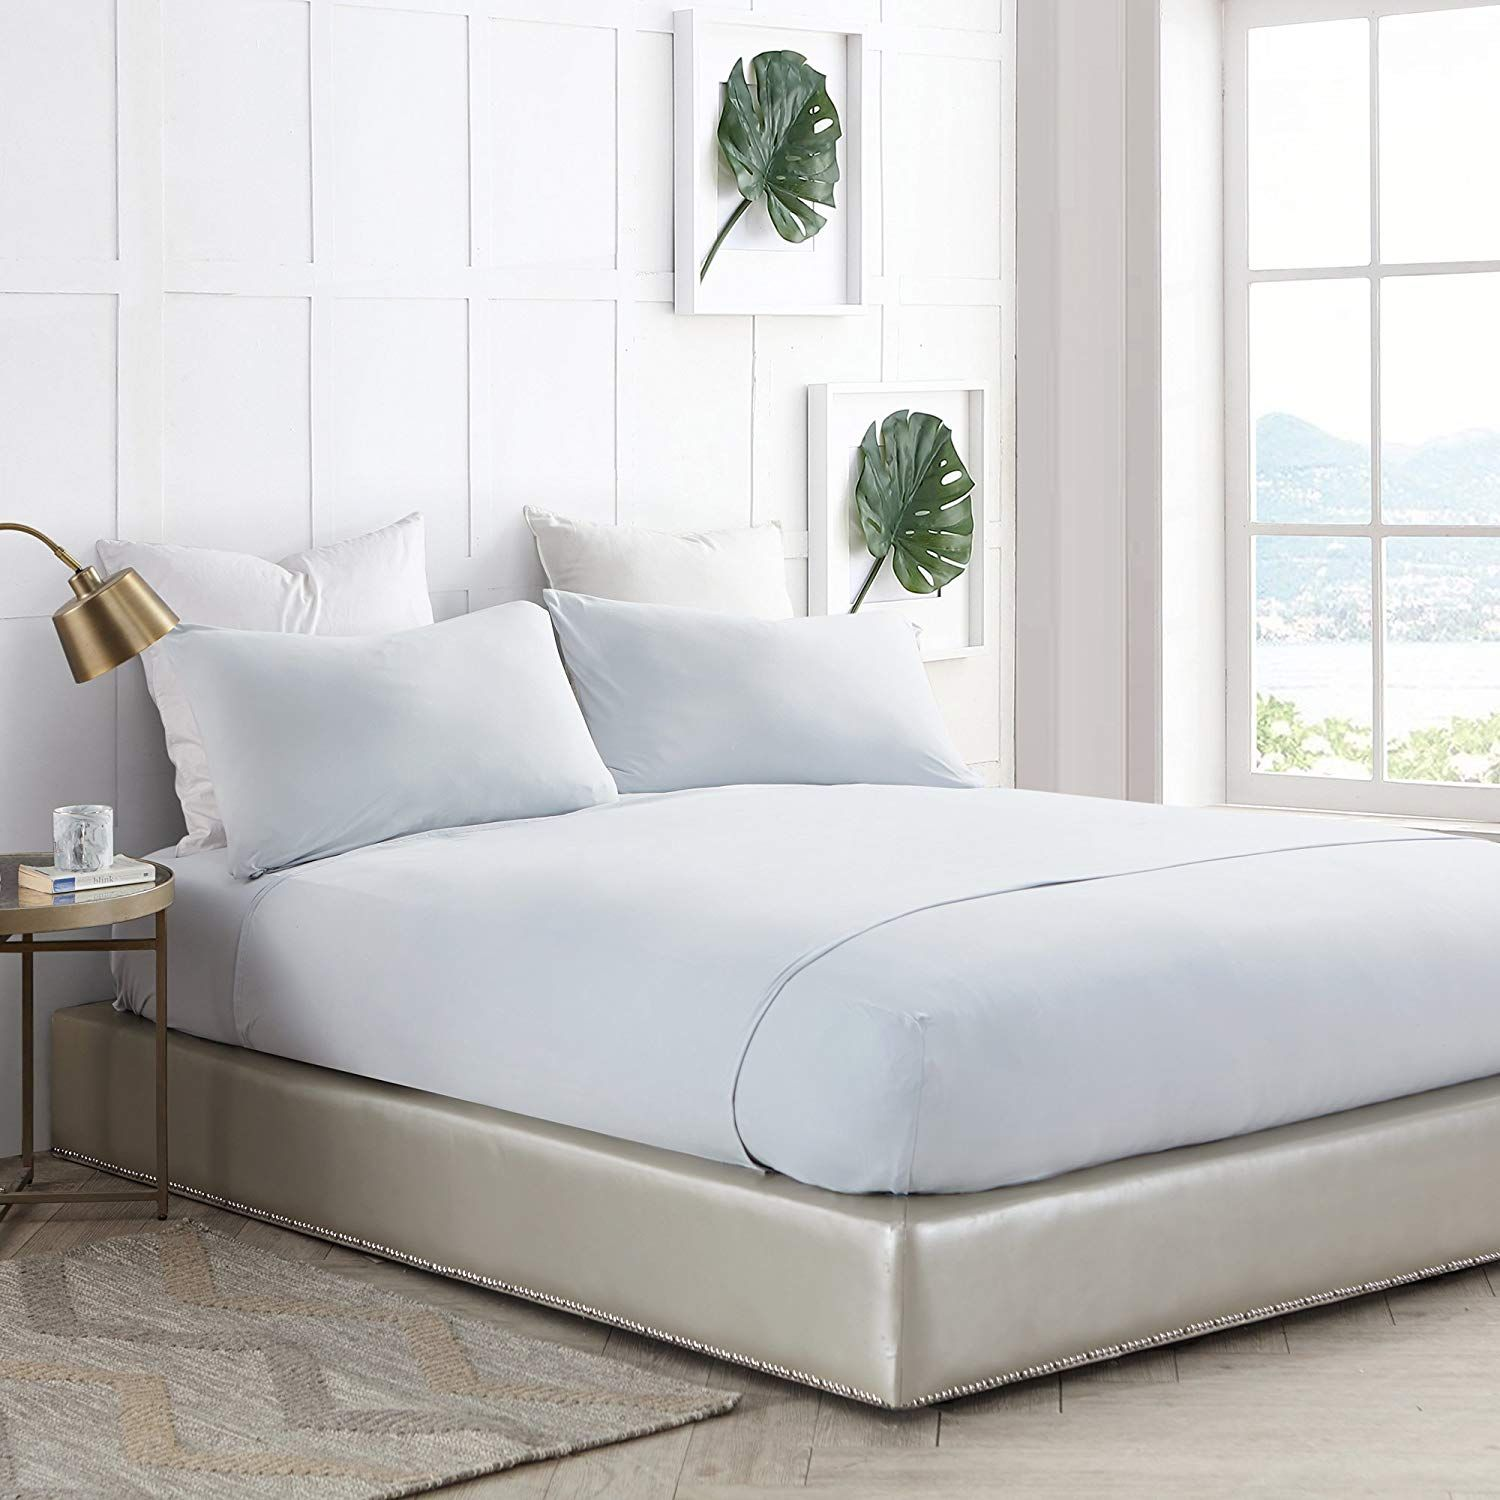 Byourbed Bare Bottom Sheets All Season King Bedding Glacier Gray You Can Get More Details By Clicking On The Image Thi Grey Sheets Bed Material Bed